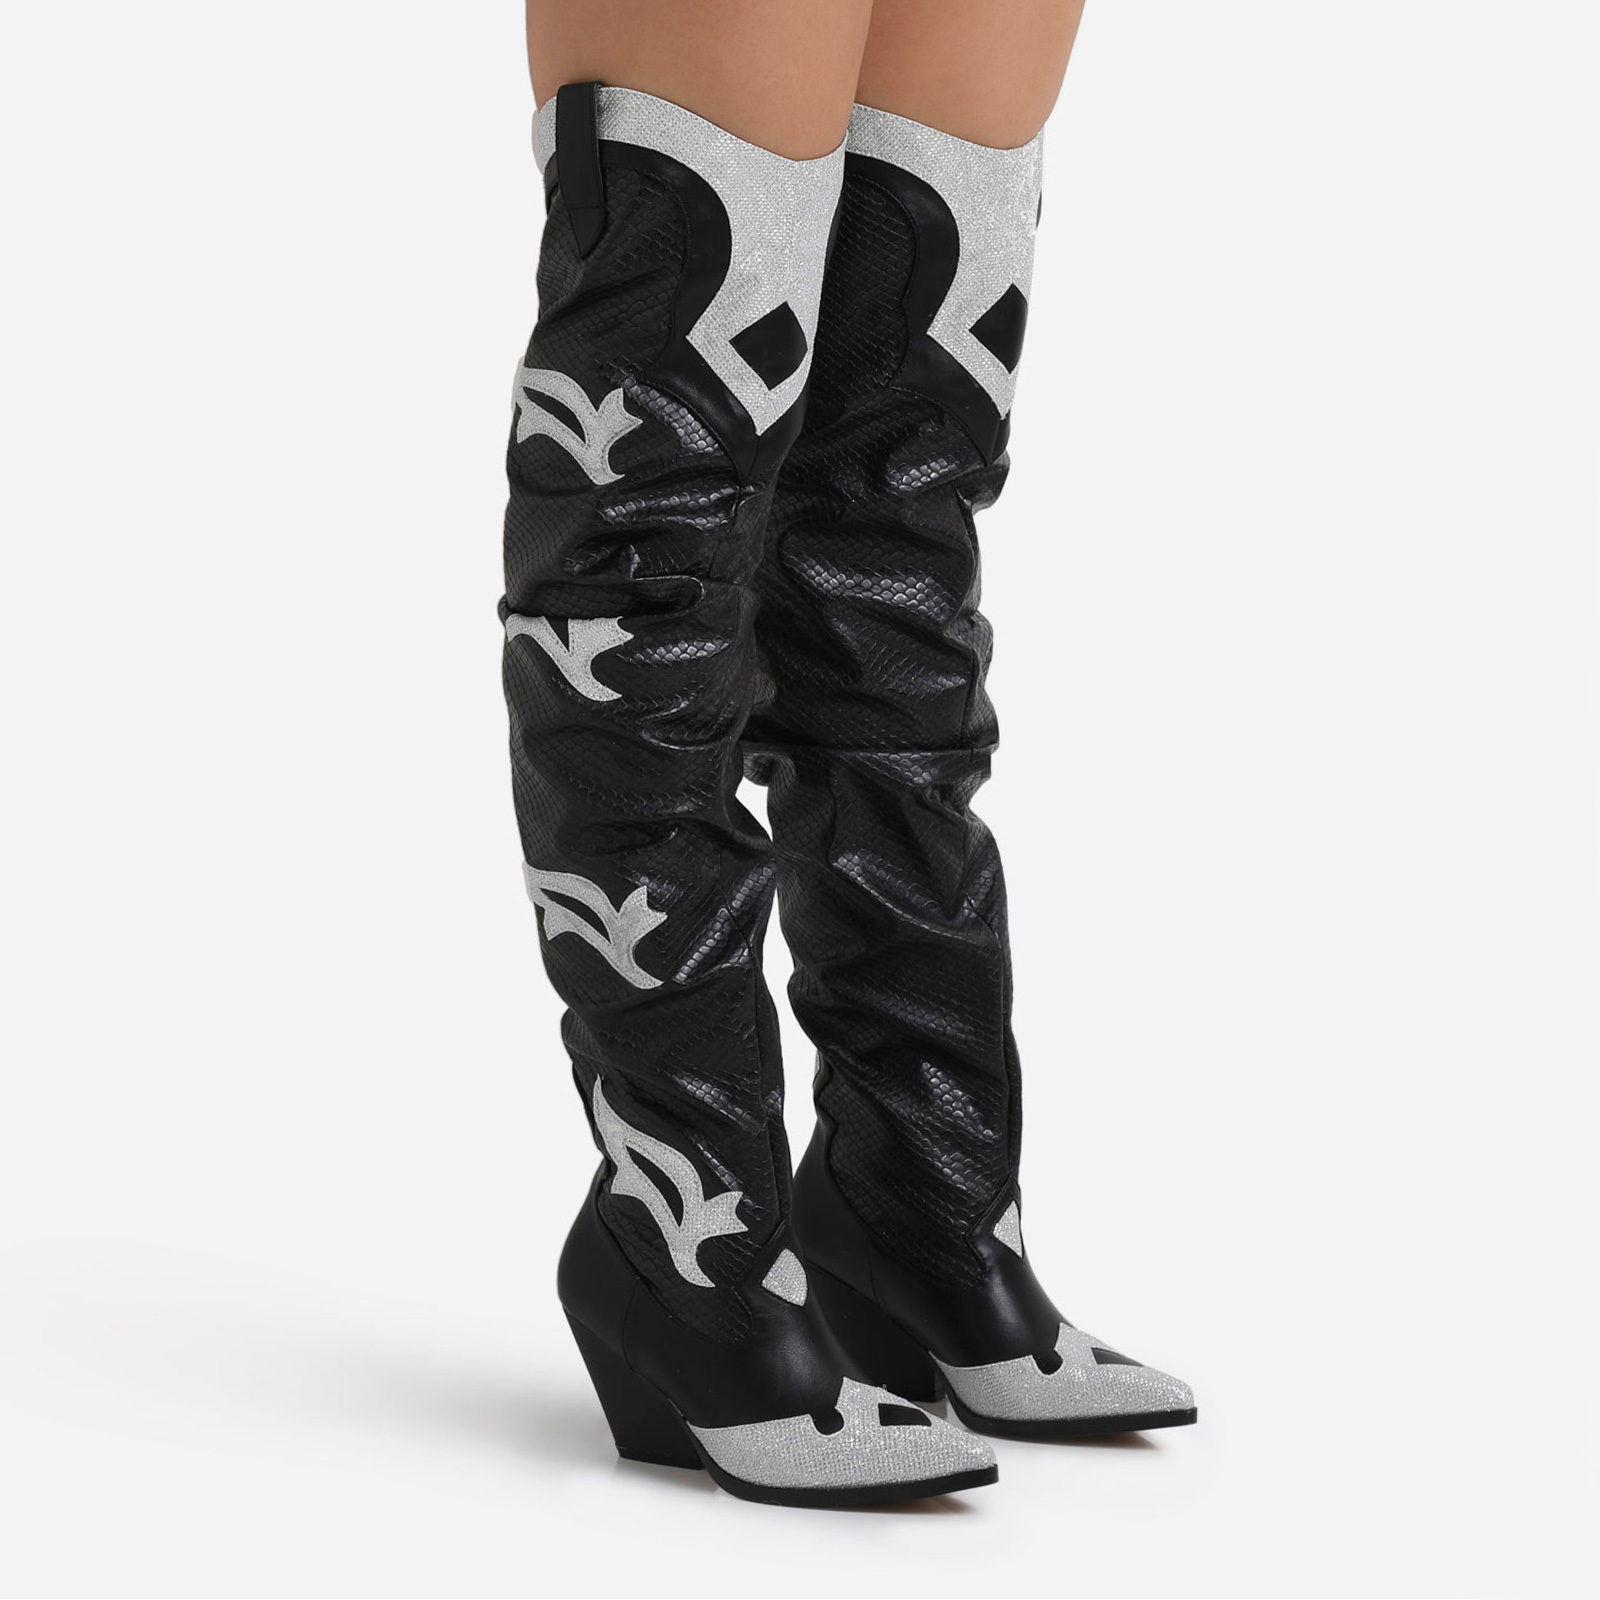 Molly Glitter Detail Embroidered Western Thigh High Long Boot In Black Snake Print Faux Leather